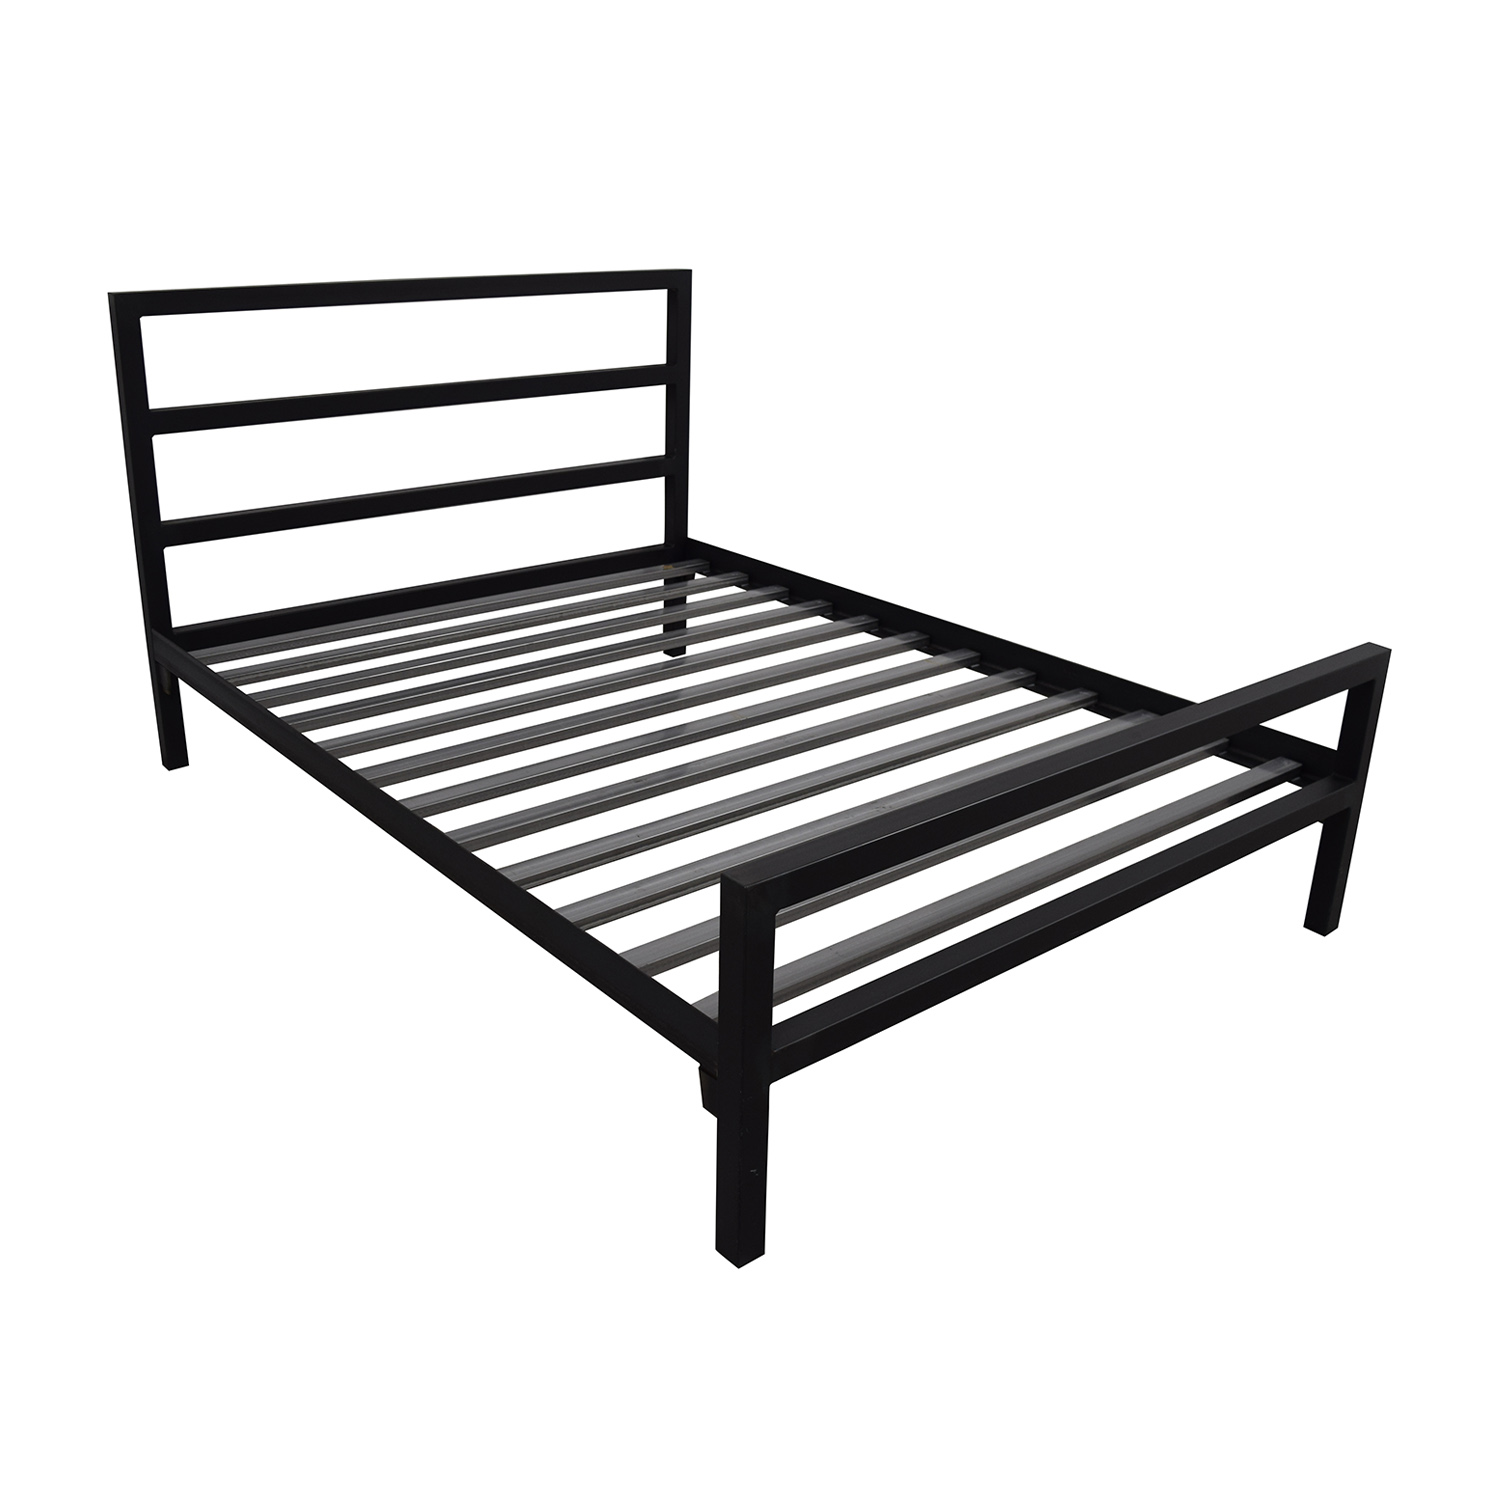 Room & Board Parsons Steel Queen Bed Frame / Bed Frames